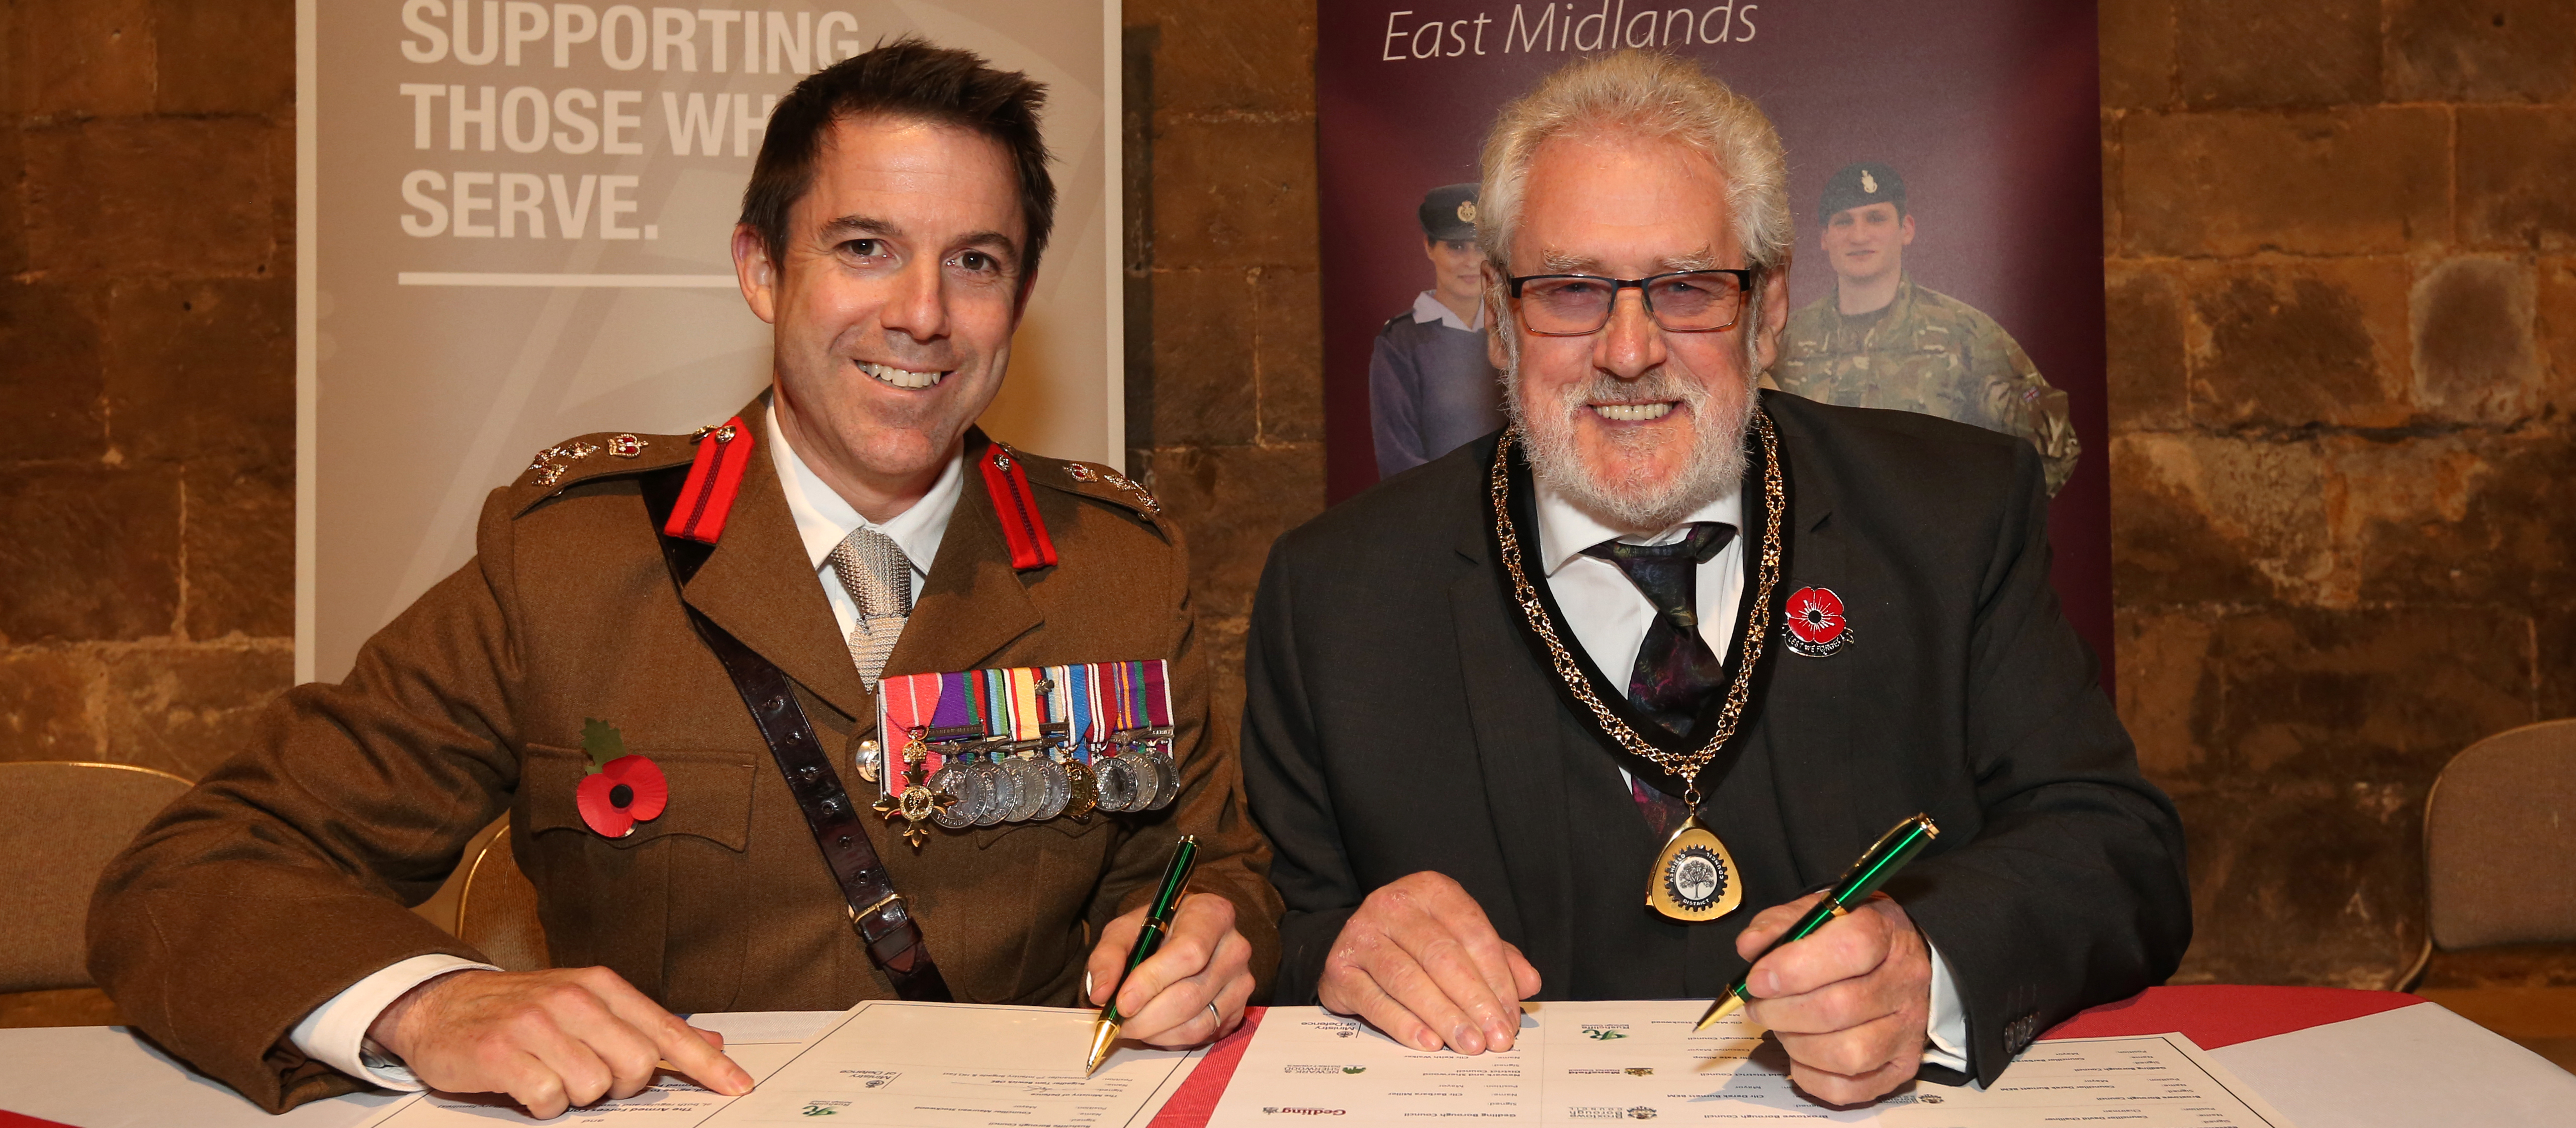 Brigadier Tom Bewick OBE and Vice-Chairman Cllr Anthony Brewer signing the Armed Forces Covenant